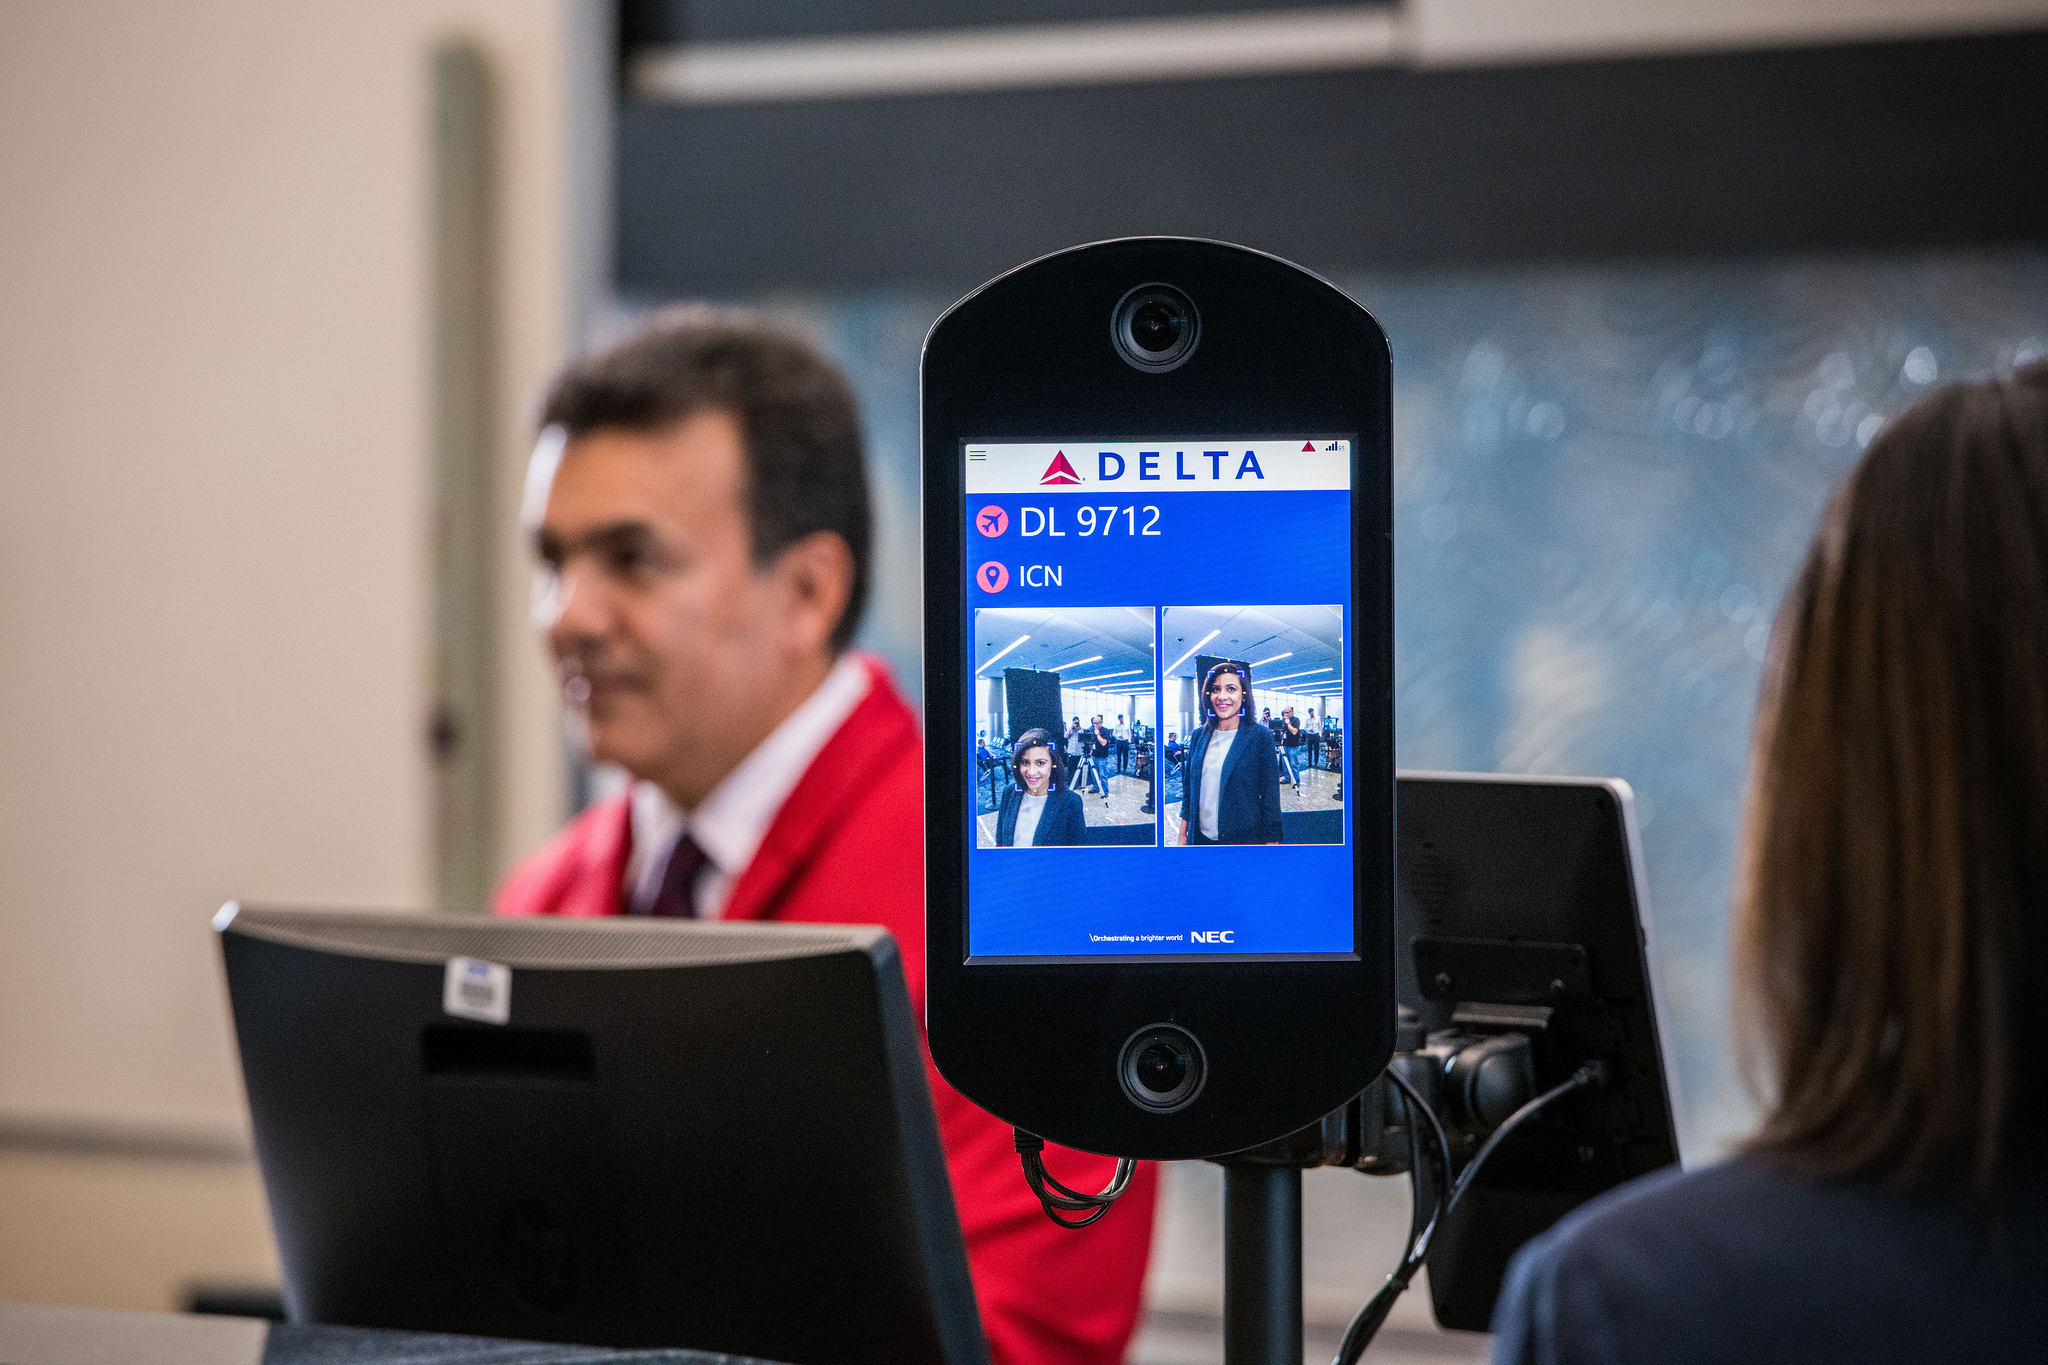 Delta expands optional facial recognition boarding to new airports, more customers